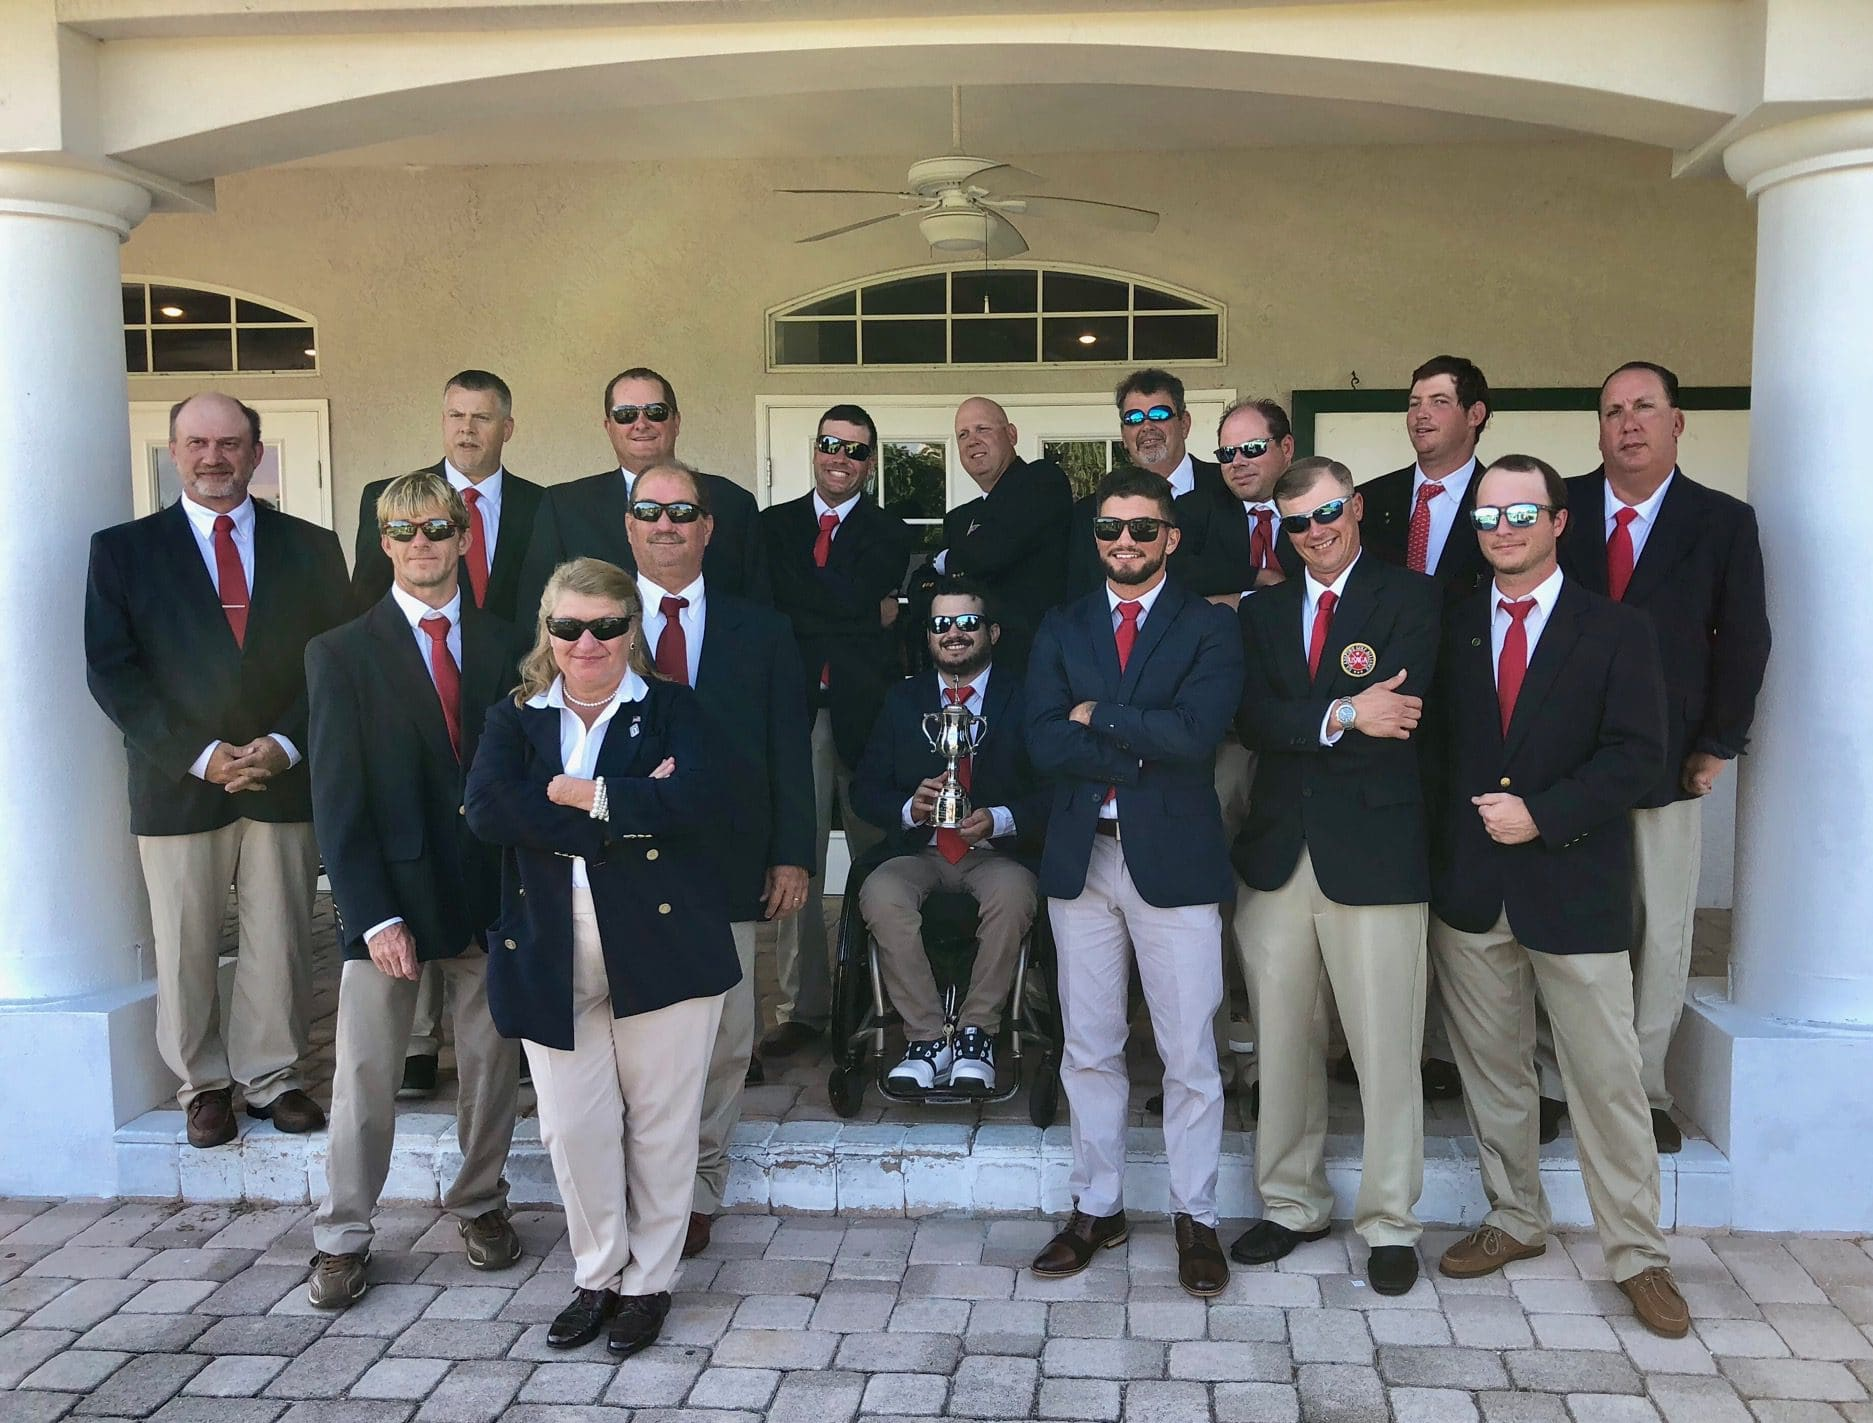 a group of golfers in khakis and black blazers. One is a wheelchair user holding a trophy.